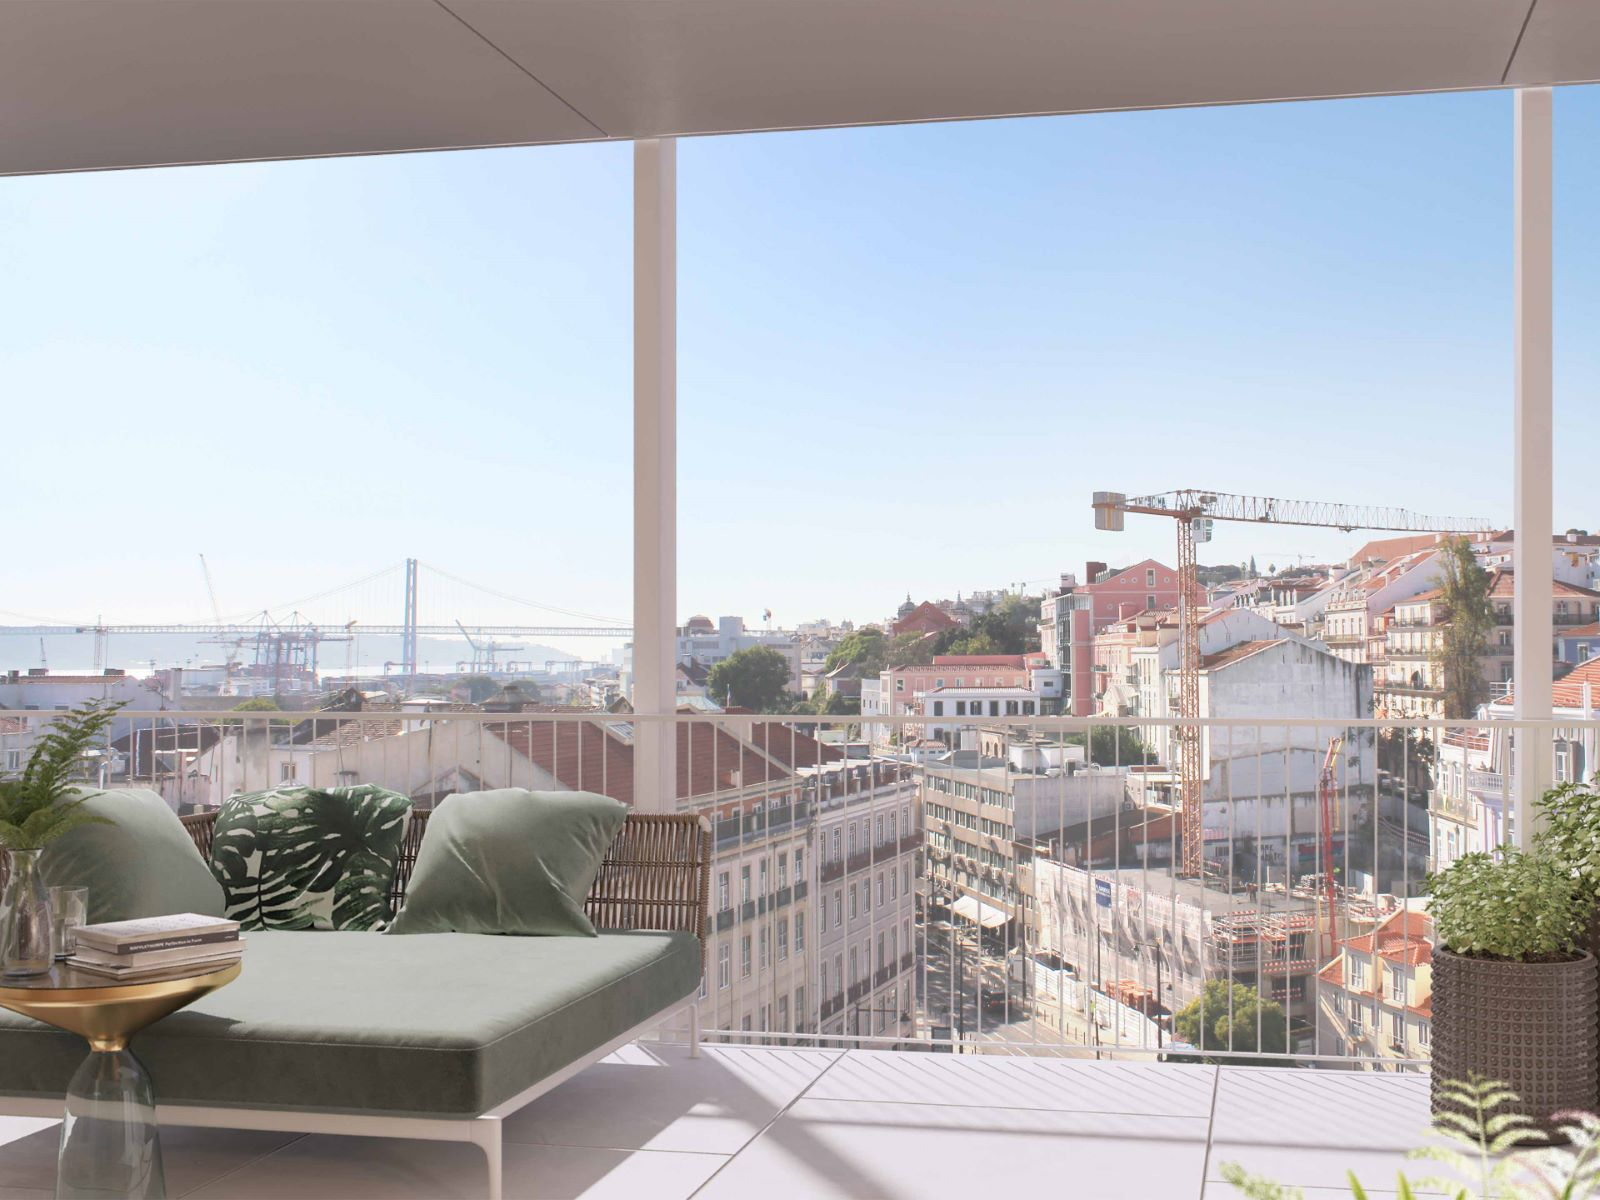 2 BEDROOM DUPLEX APARTMENT WITH TAGUS RIVER VIEW IN SANTOS, LISBON